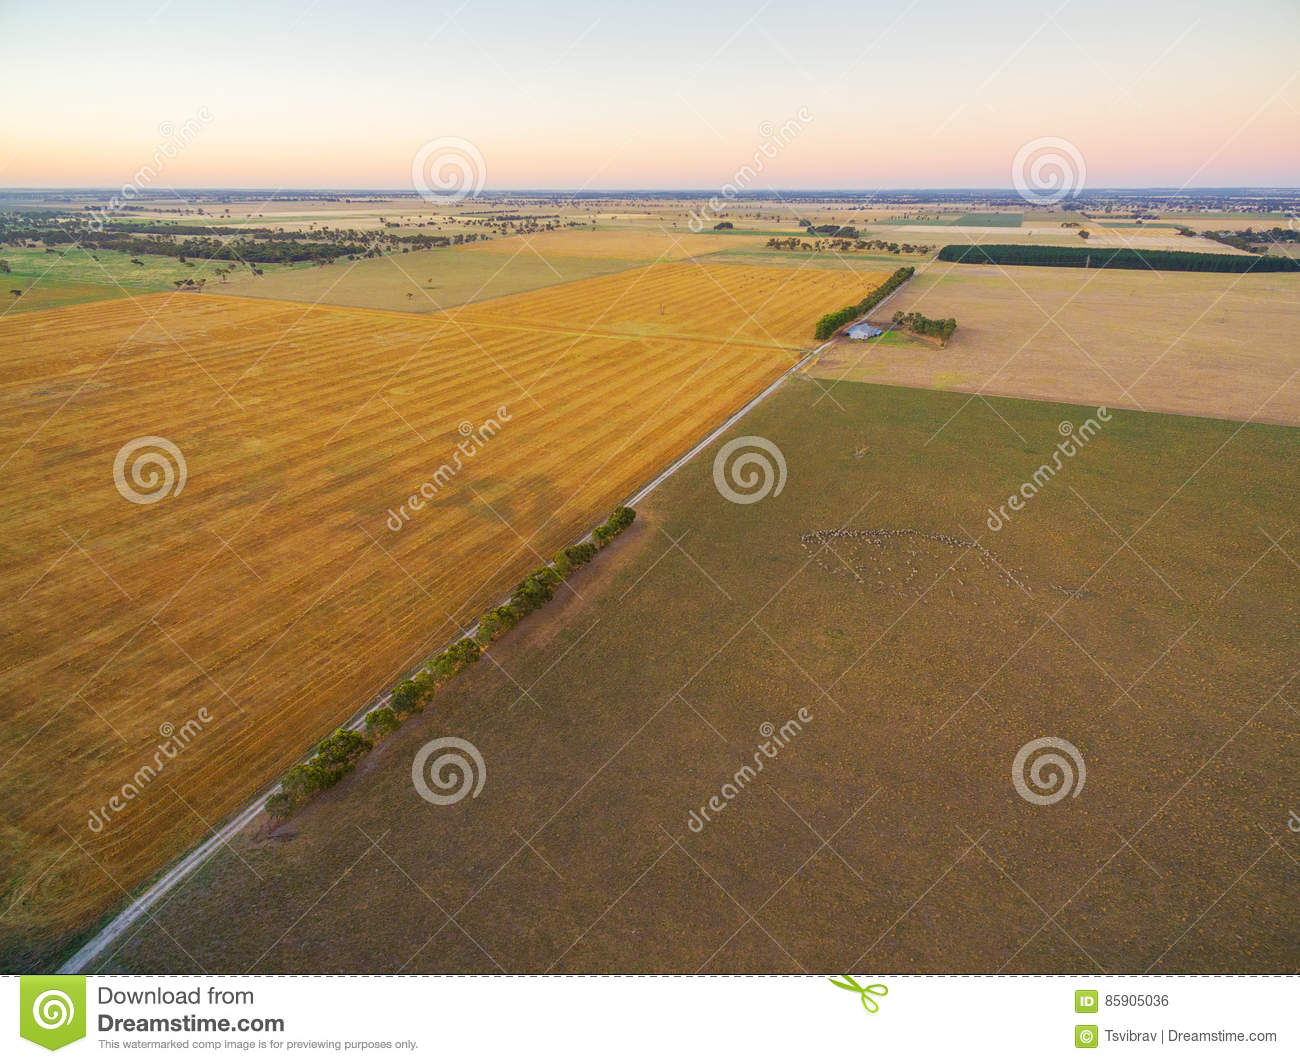 Aerial view of harvested agricultural field and pastures at suns